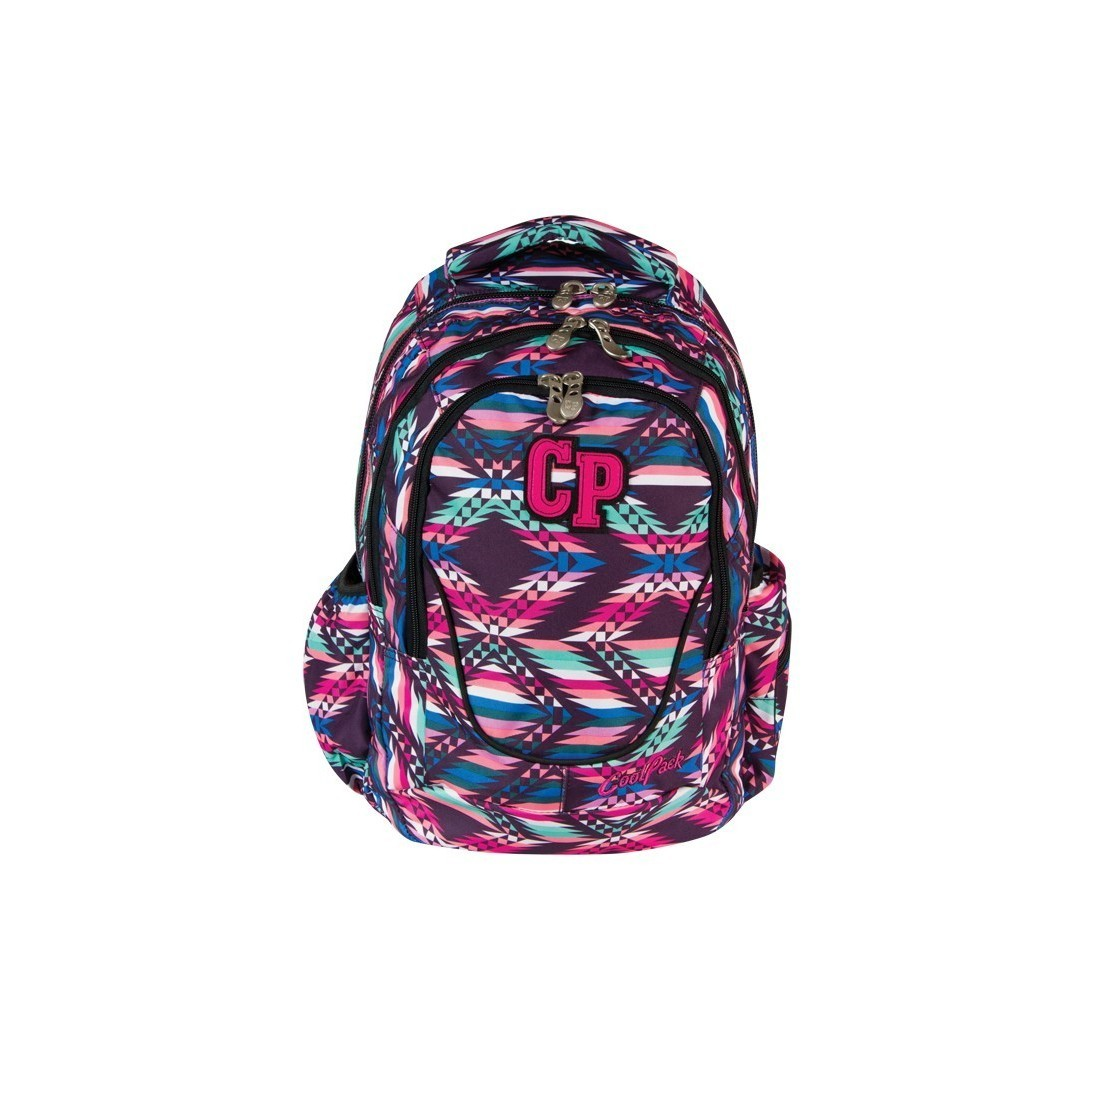 PLECAK MŁODZIEŻOWY COOLPACK SIMPLE PINK MEXICO CP 271 - plecak-tornister.pl